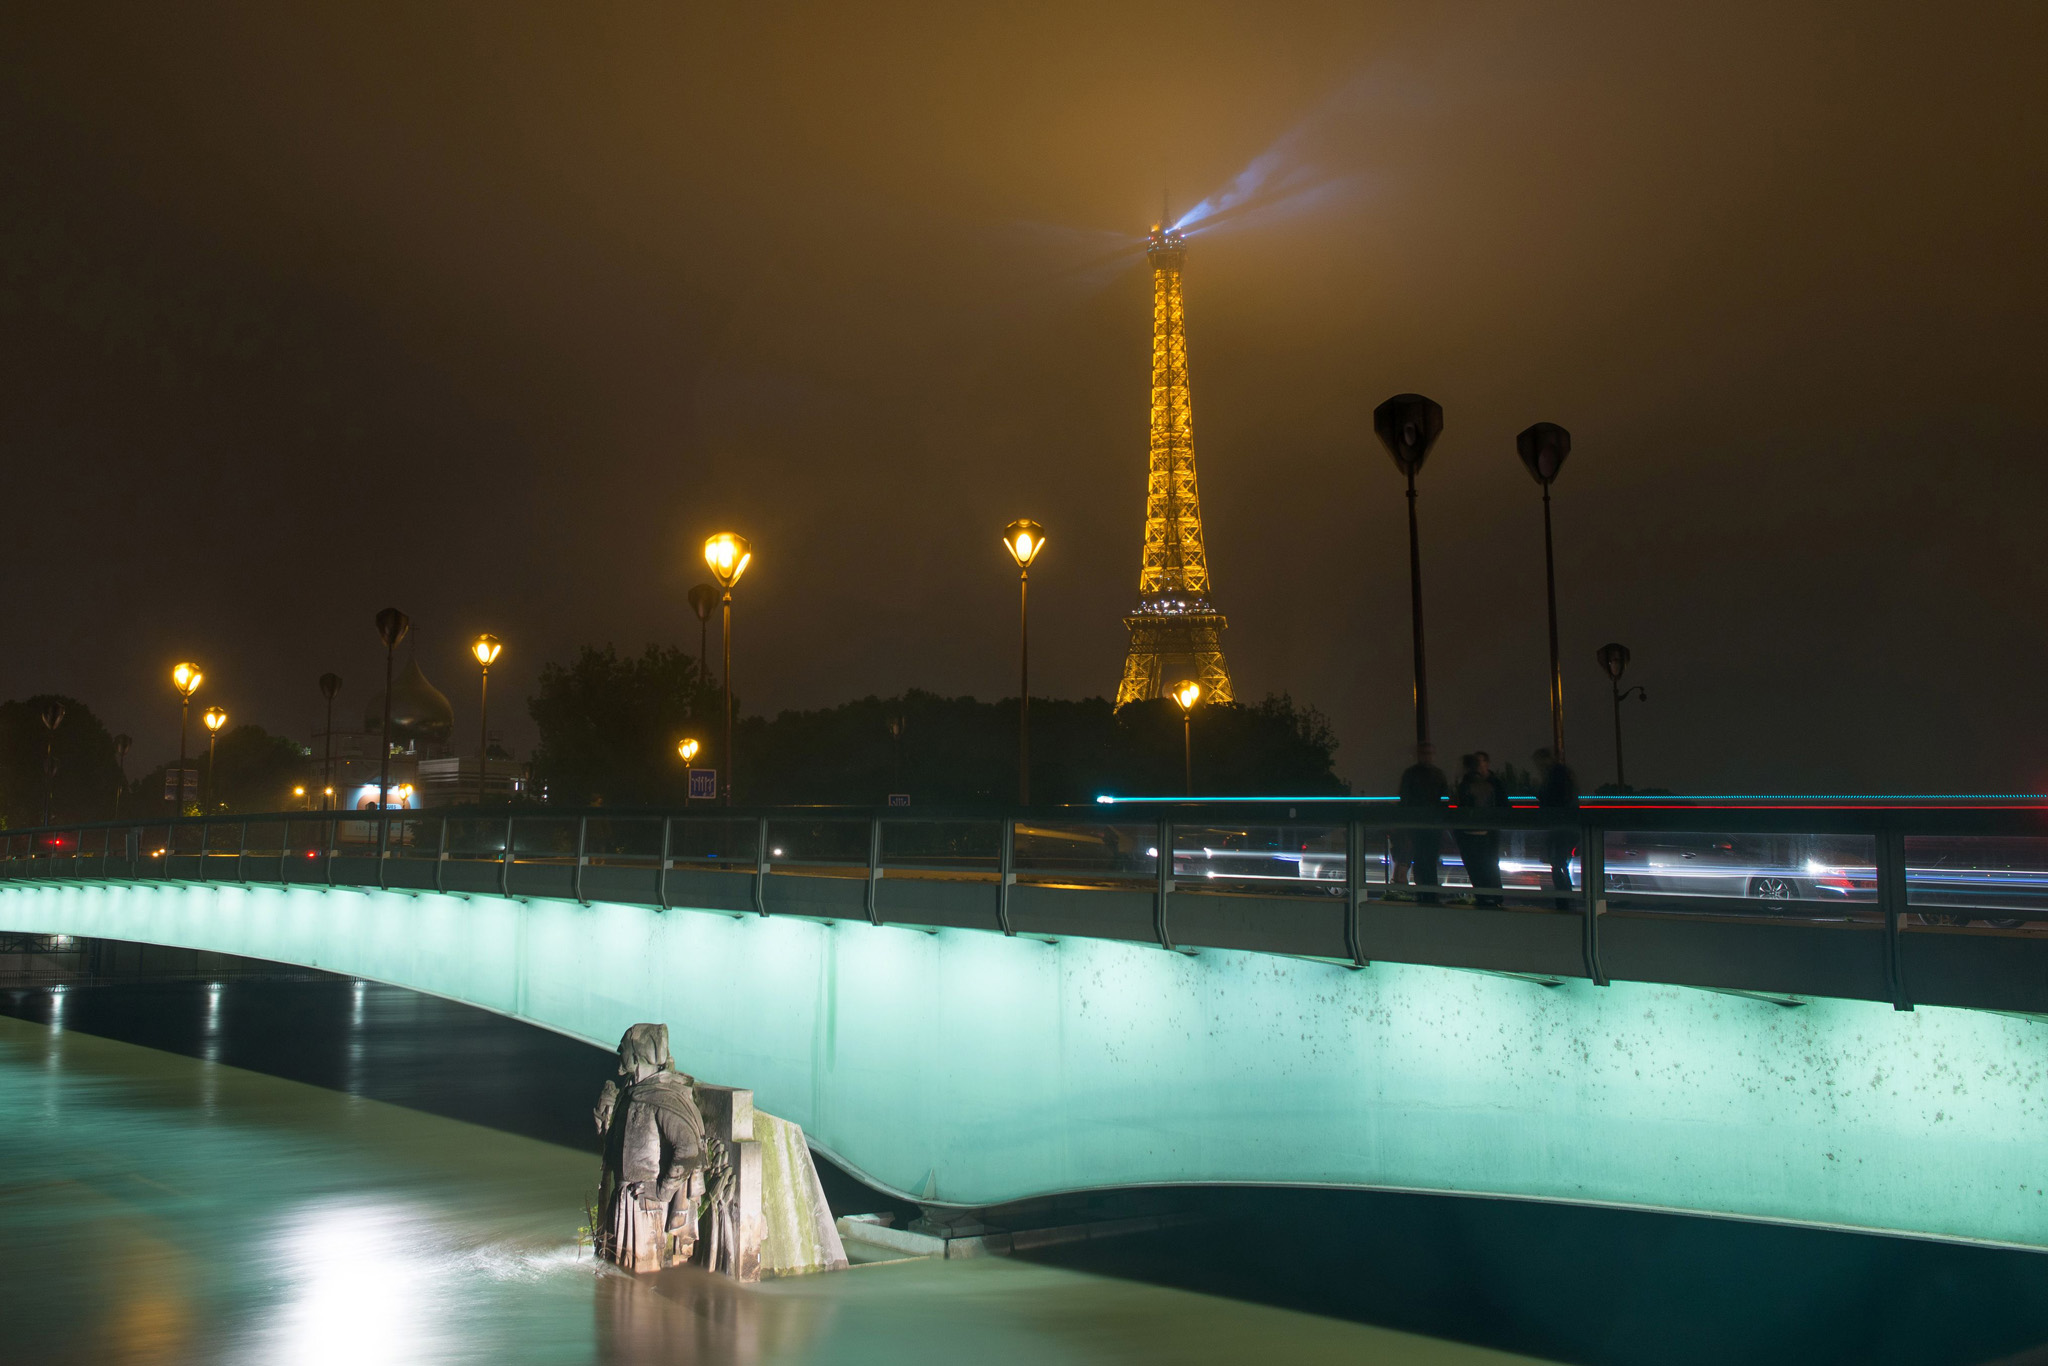 Water rising near the statue of the Zouave and the Eiffel Tower at the Alma bridge in Paris.